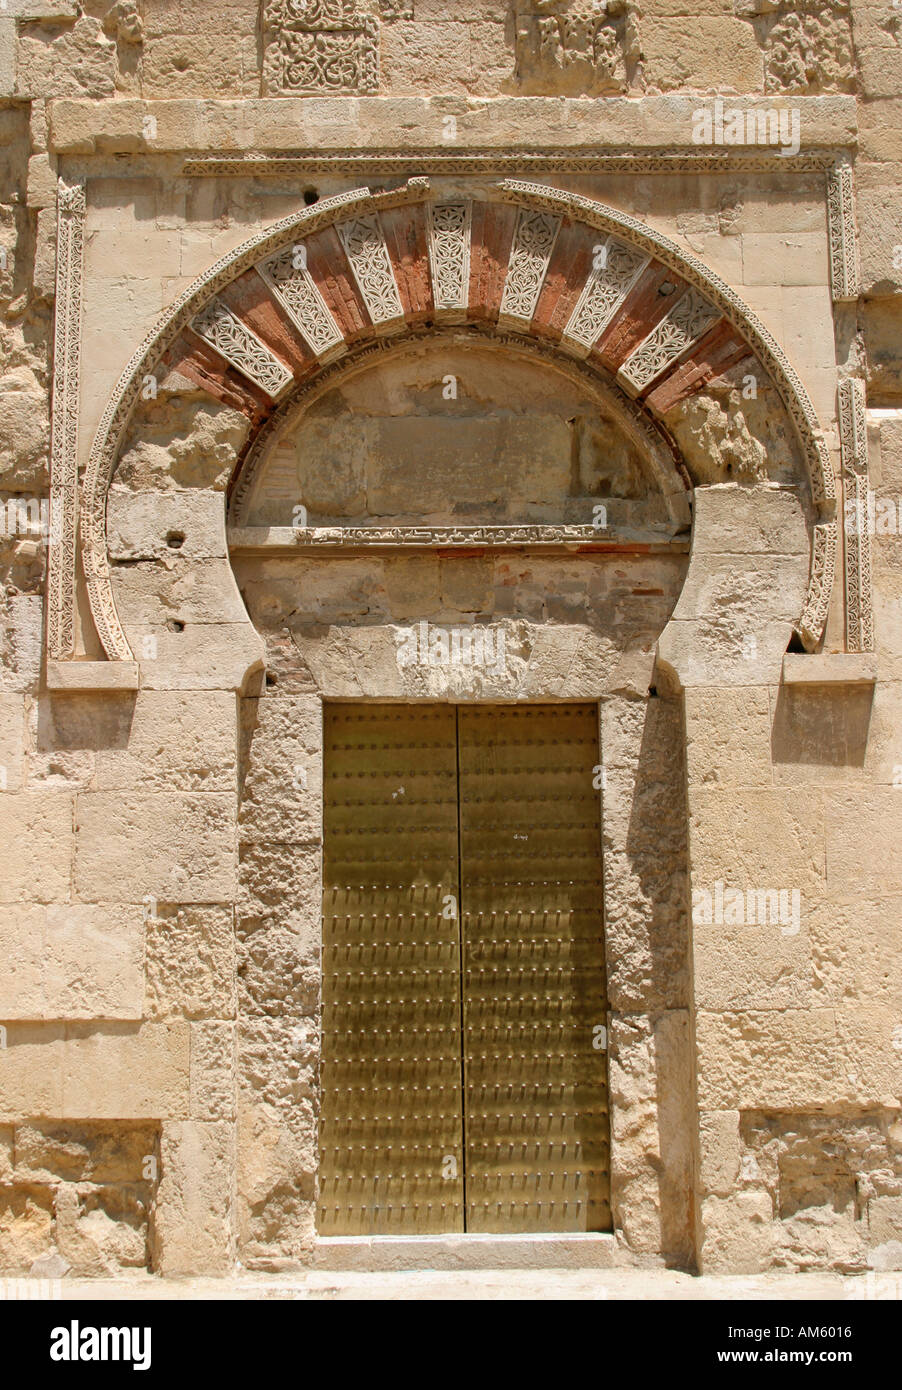 Cordoba Spain La Mezquita The Great Mosque Doorway in western Stock Photo